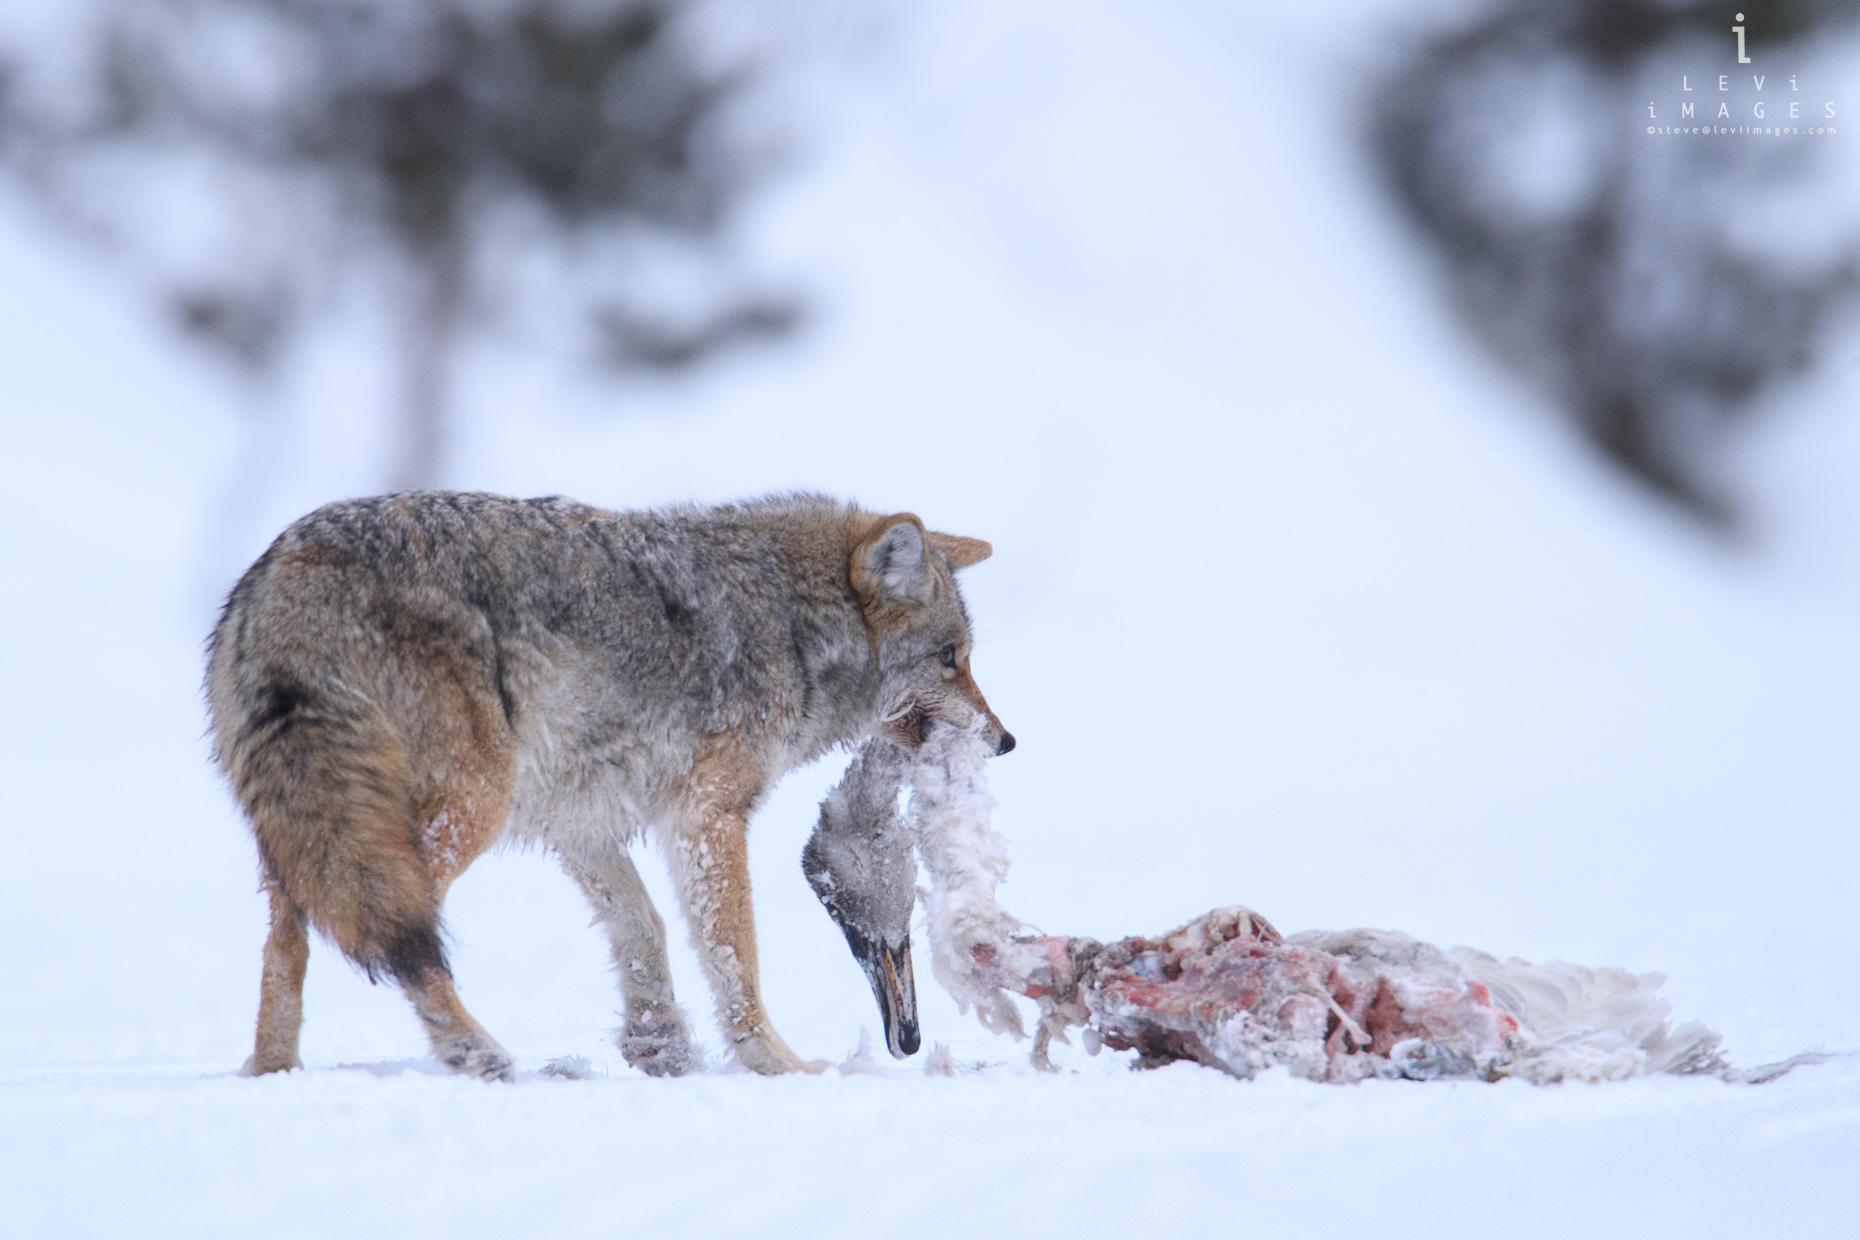 Coyote (Canis latrans) with goose kill in mouth. Yellowstone National Park, Wyoming